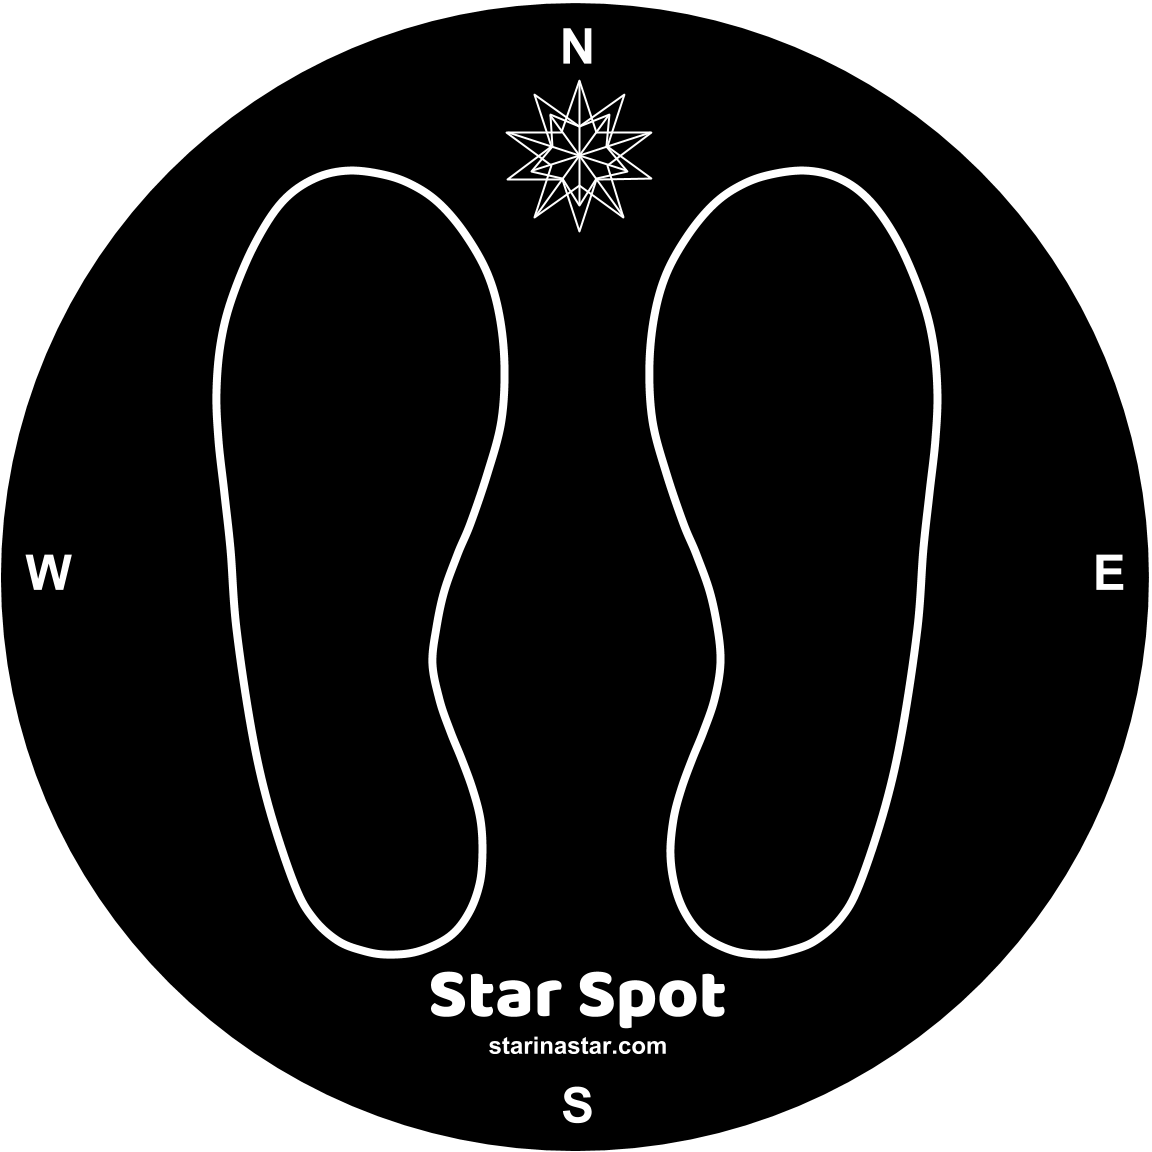 Star Spot decal you can use to find and mark your own North Star